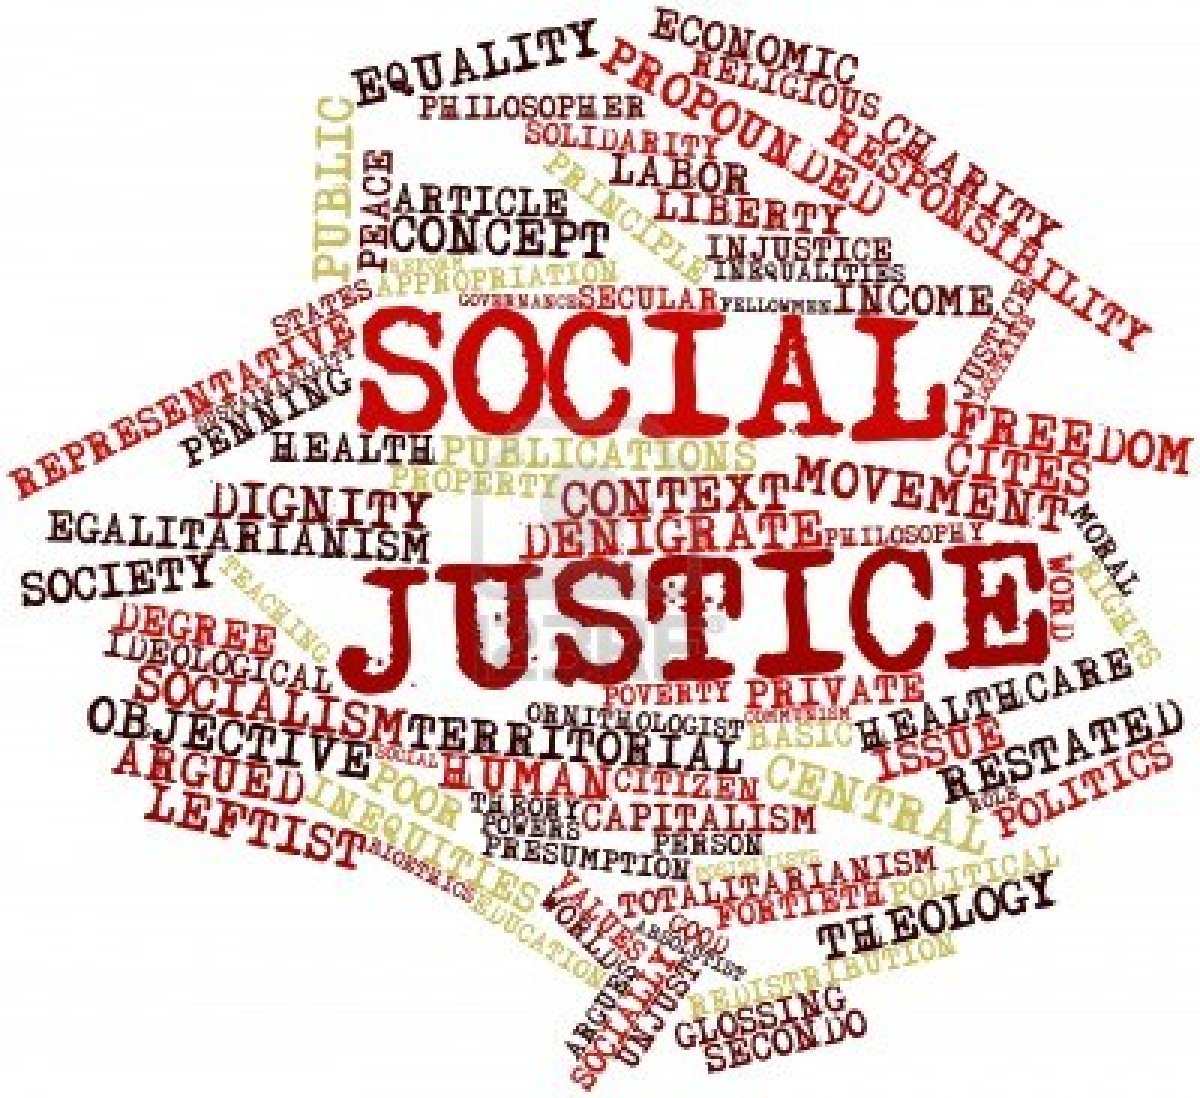 essay on social justice Social justice essays: over 180,000 social justice essays, social justice term papers, social justice research paper, book reports 184 990 essays, term and research.